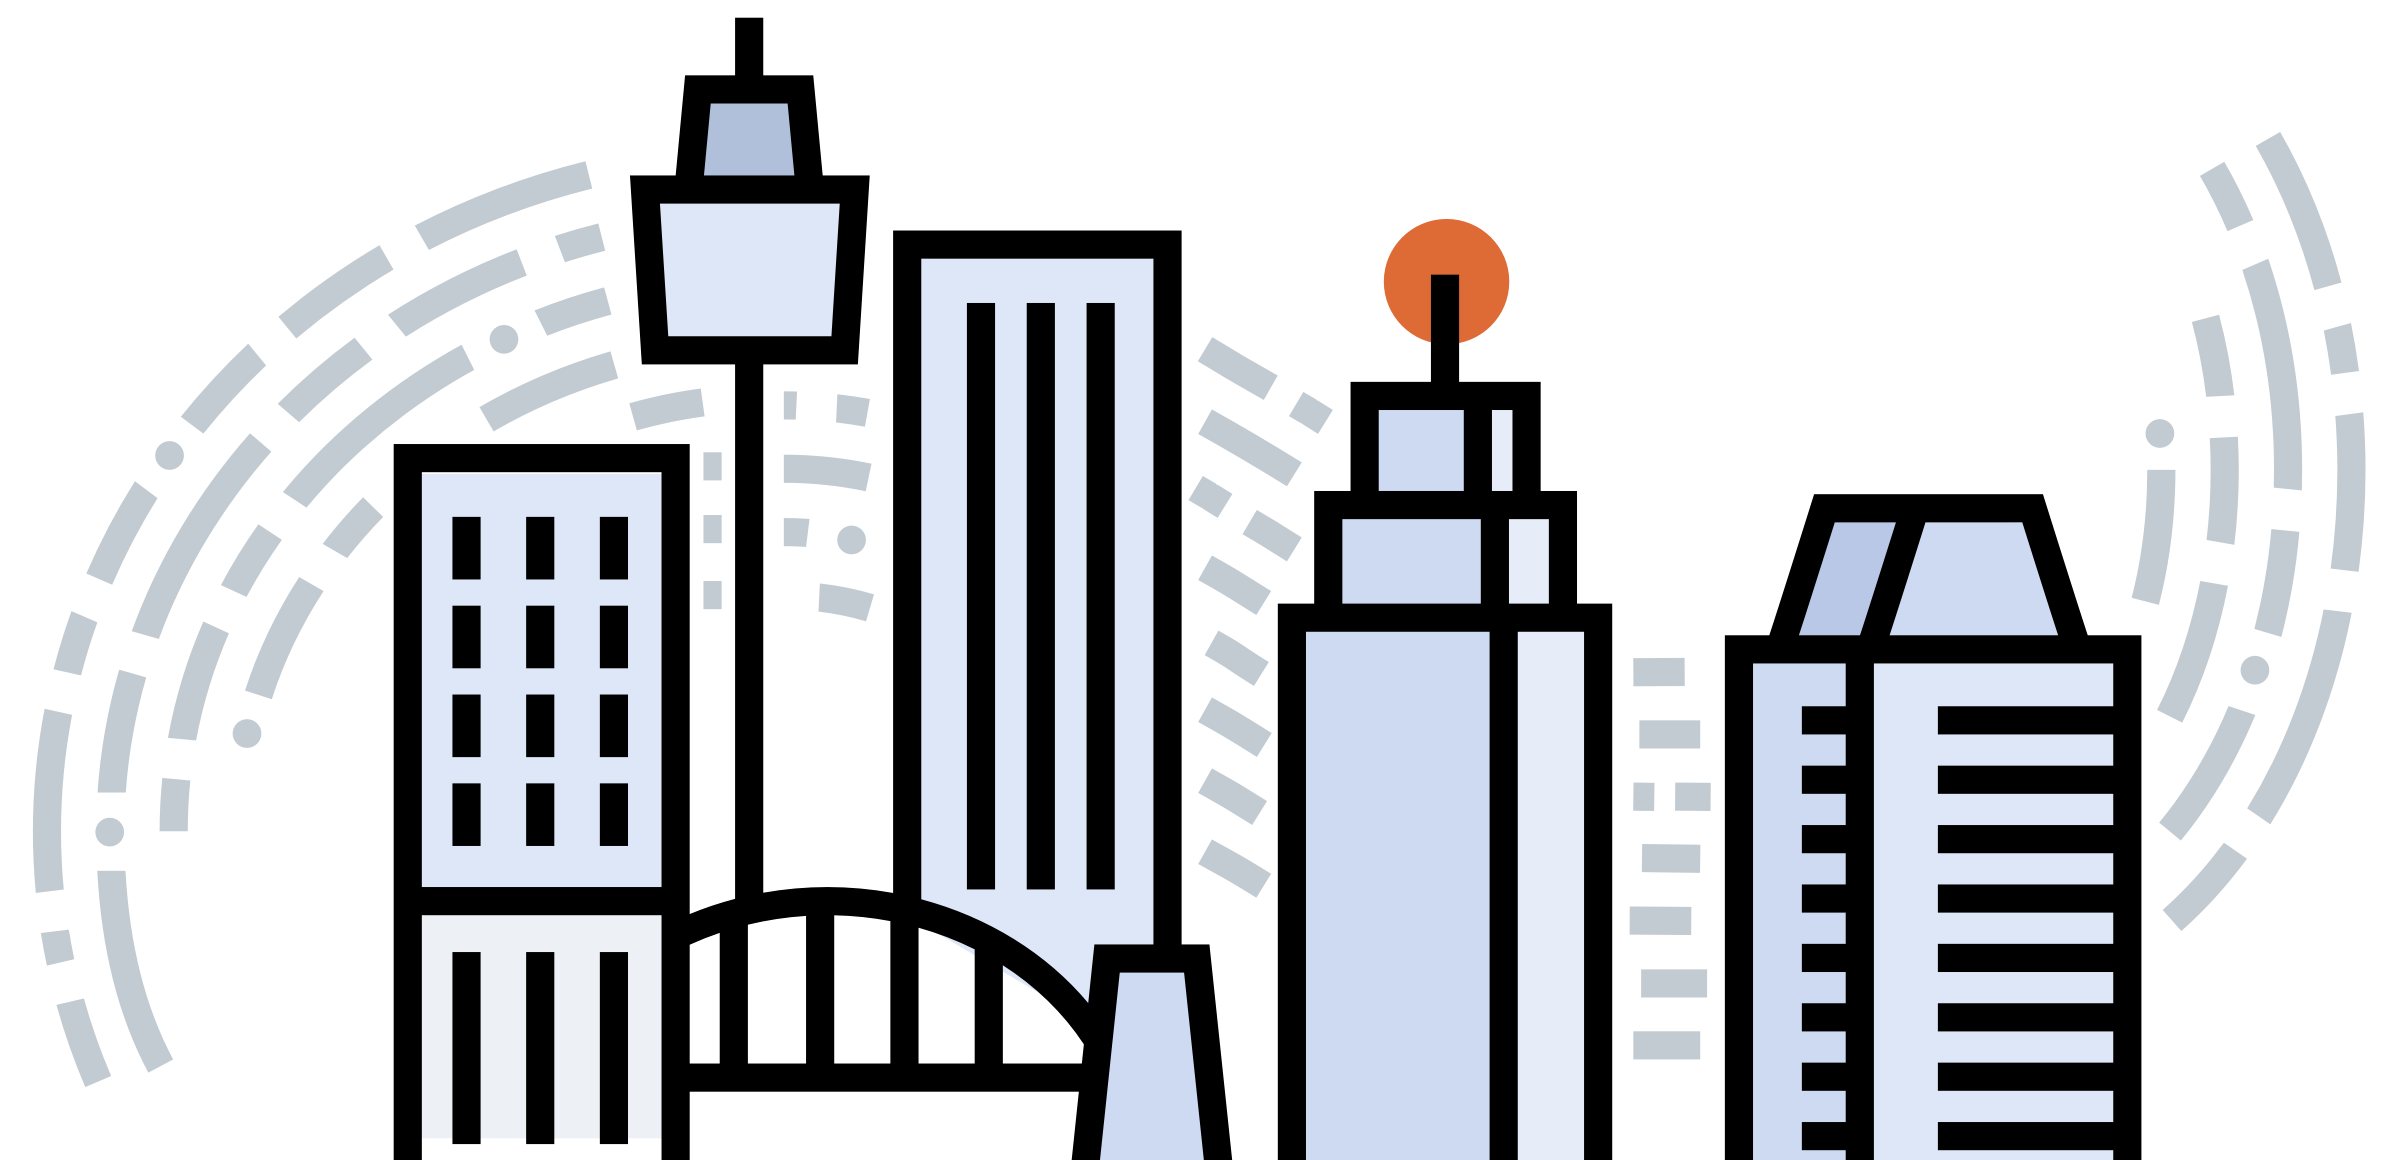 City clipart smart city. Cities unh connectivity research